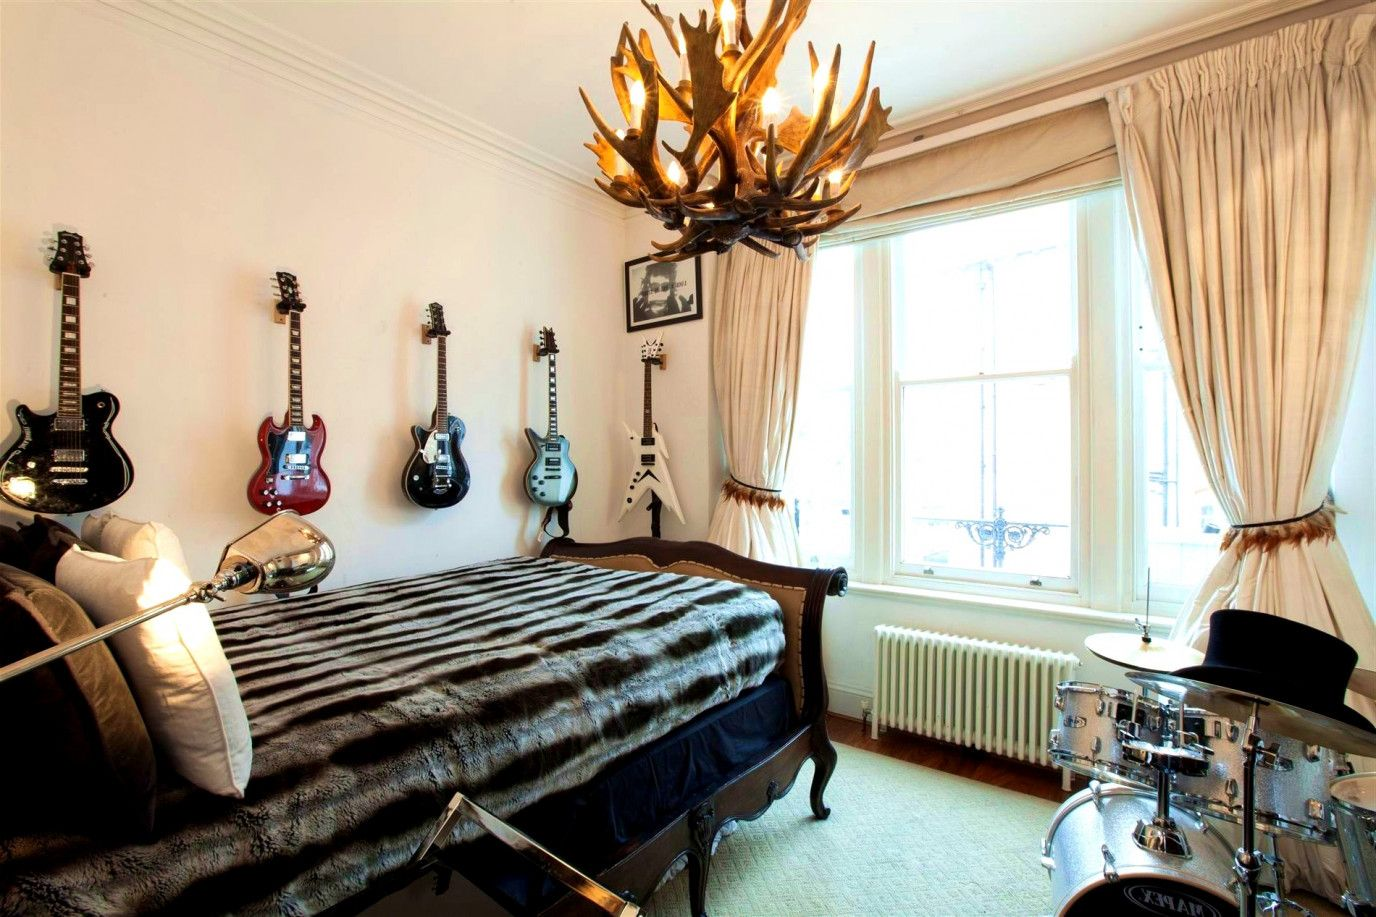 78  Guitar themed Bedroom   Simple Interior Design for Bedroom Check     78  Guitar themed Bedroom   Simple Interior Design for Bedroom Check more  at http